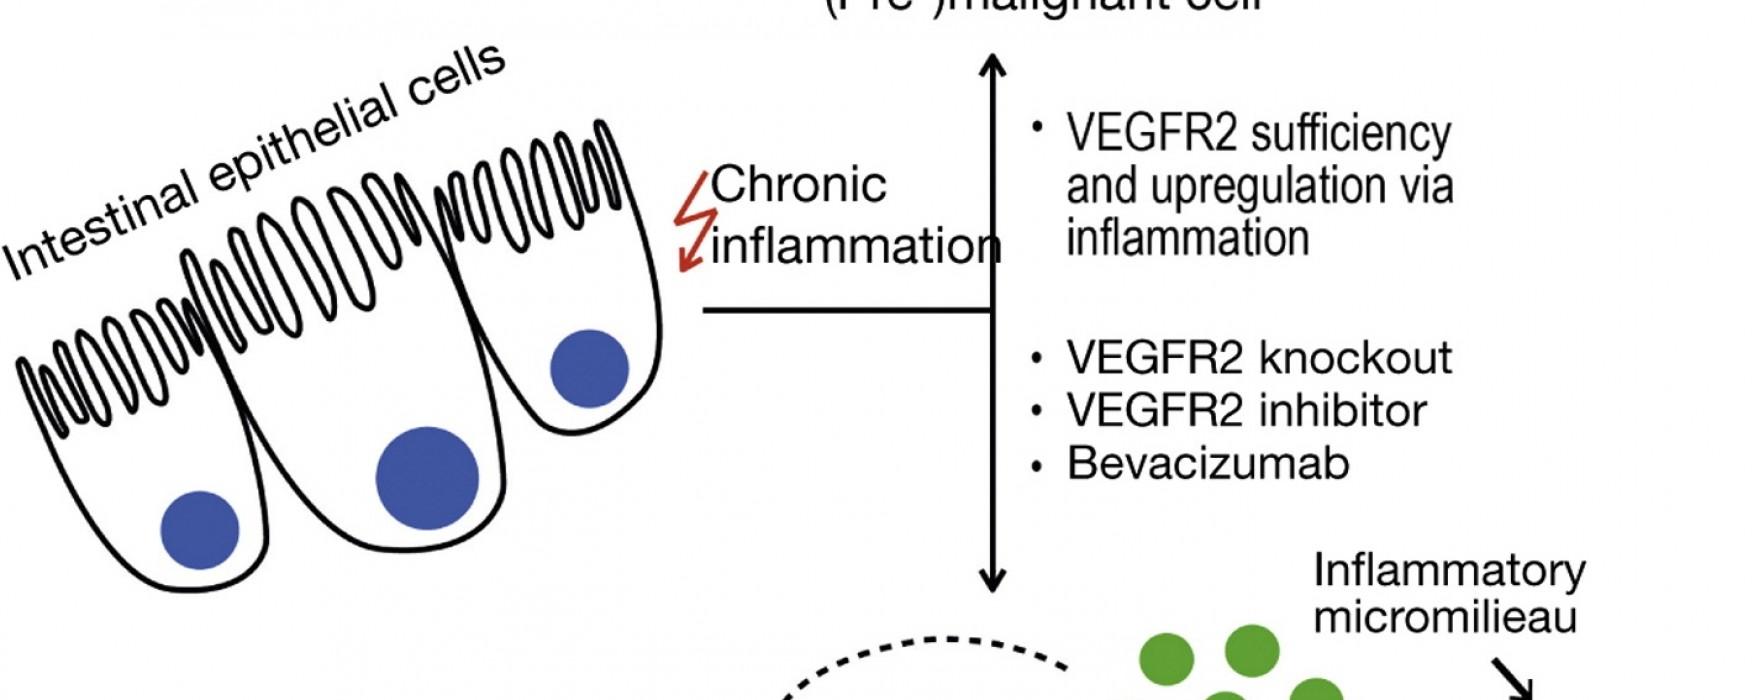 VEGF Signaling Prevents Senescence in Colorectal Tumors